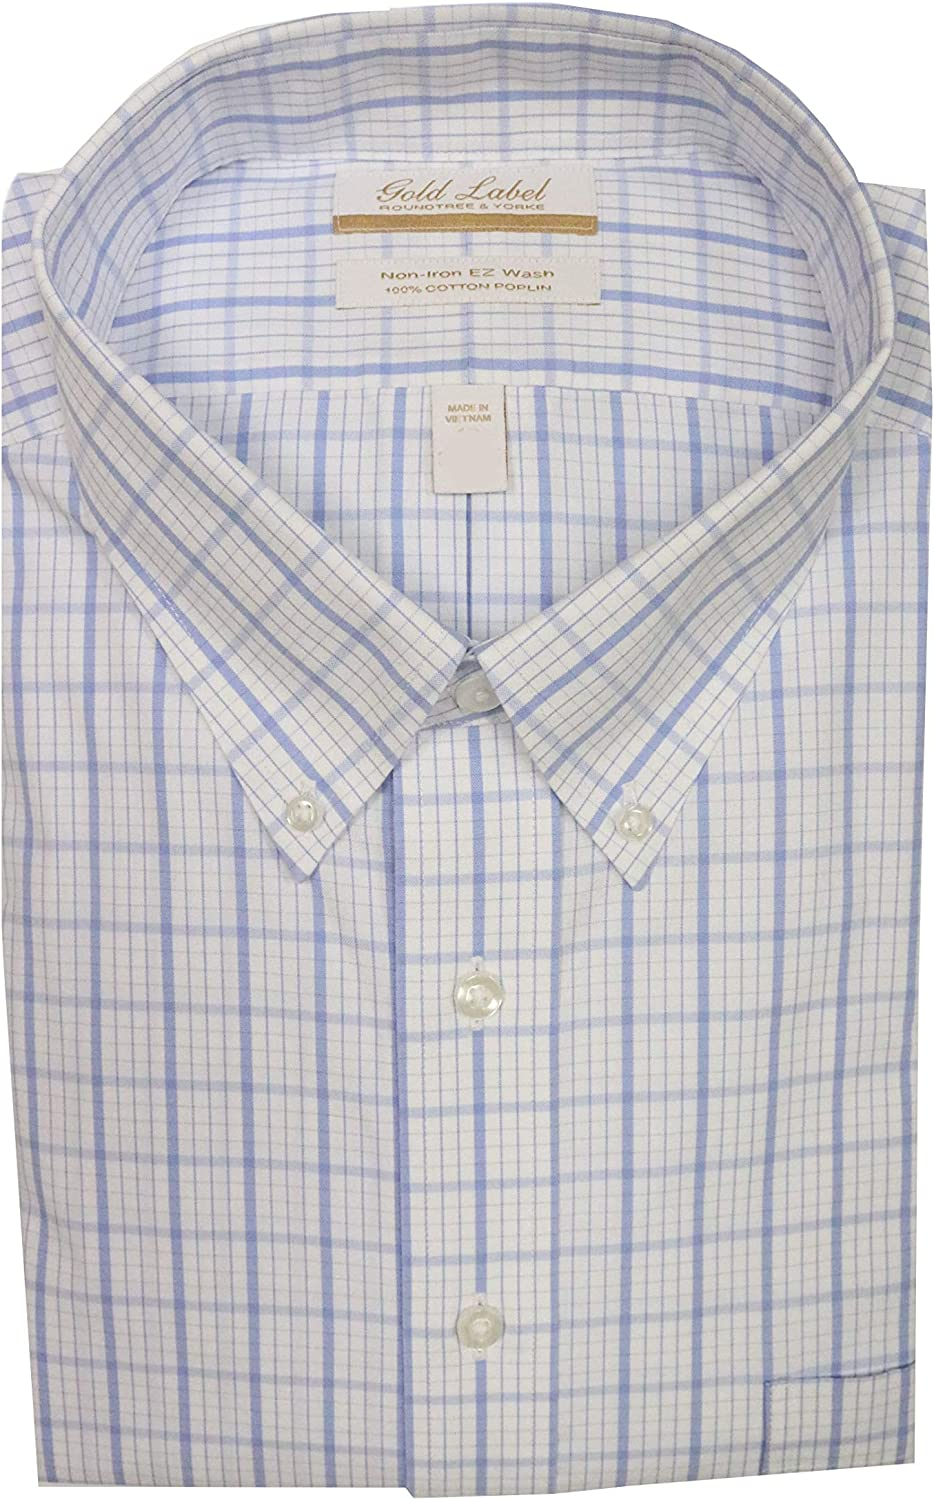 Gold Label Roundtree & Yorke Non-Iron Regular Button Down Checked Dress Shirt G16A0039 Blue Multi